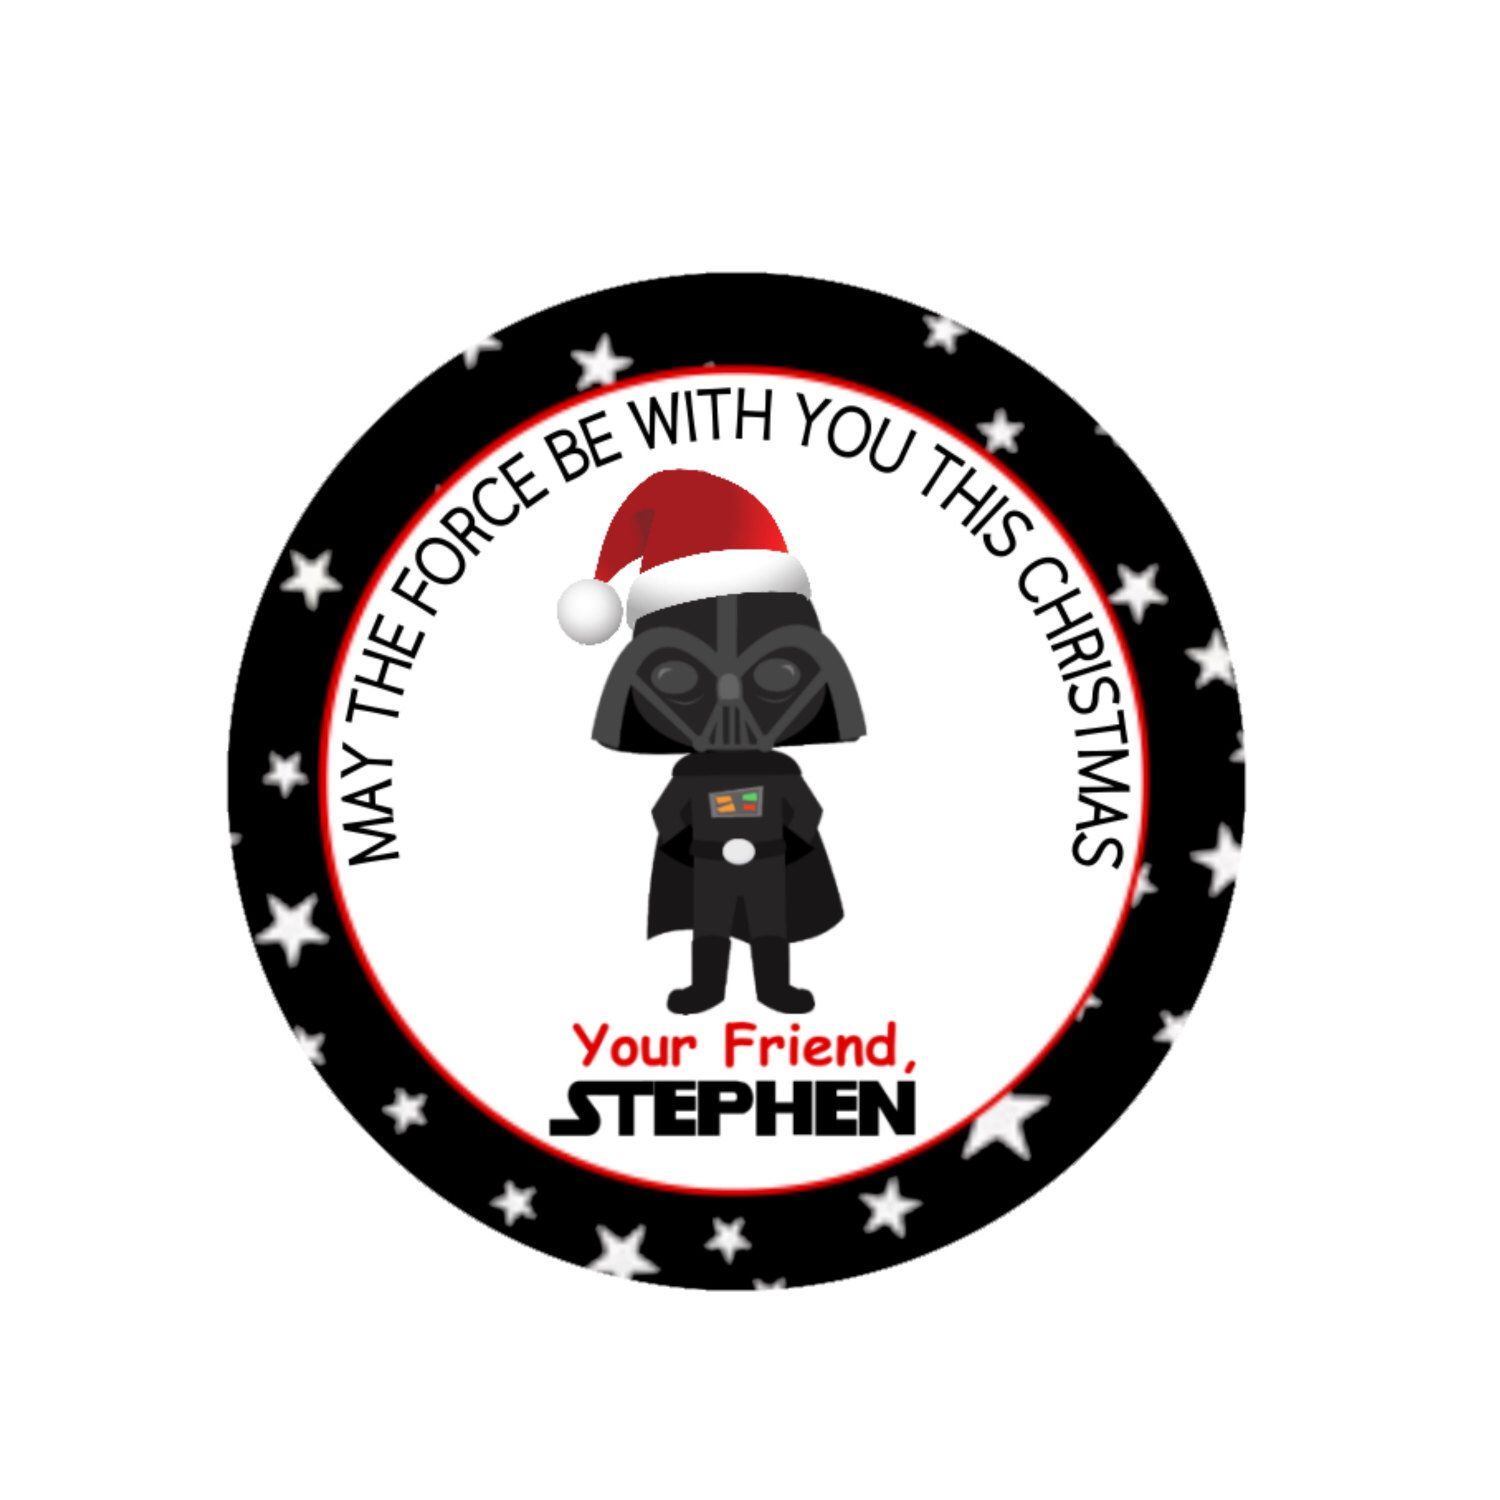 12 Printed Christmas Star Wars Stickers 2 5 Party Favor